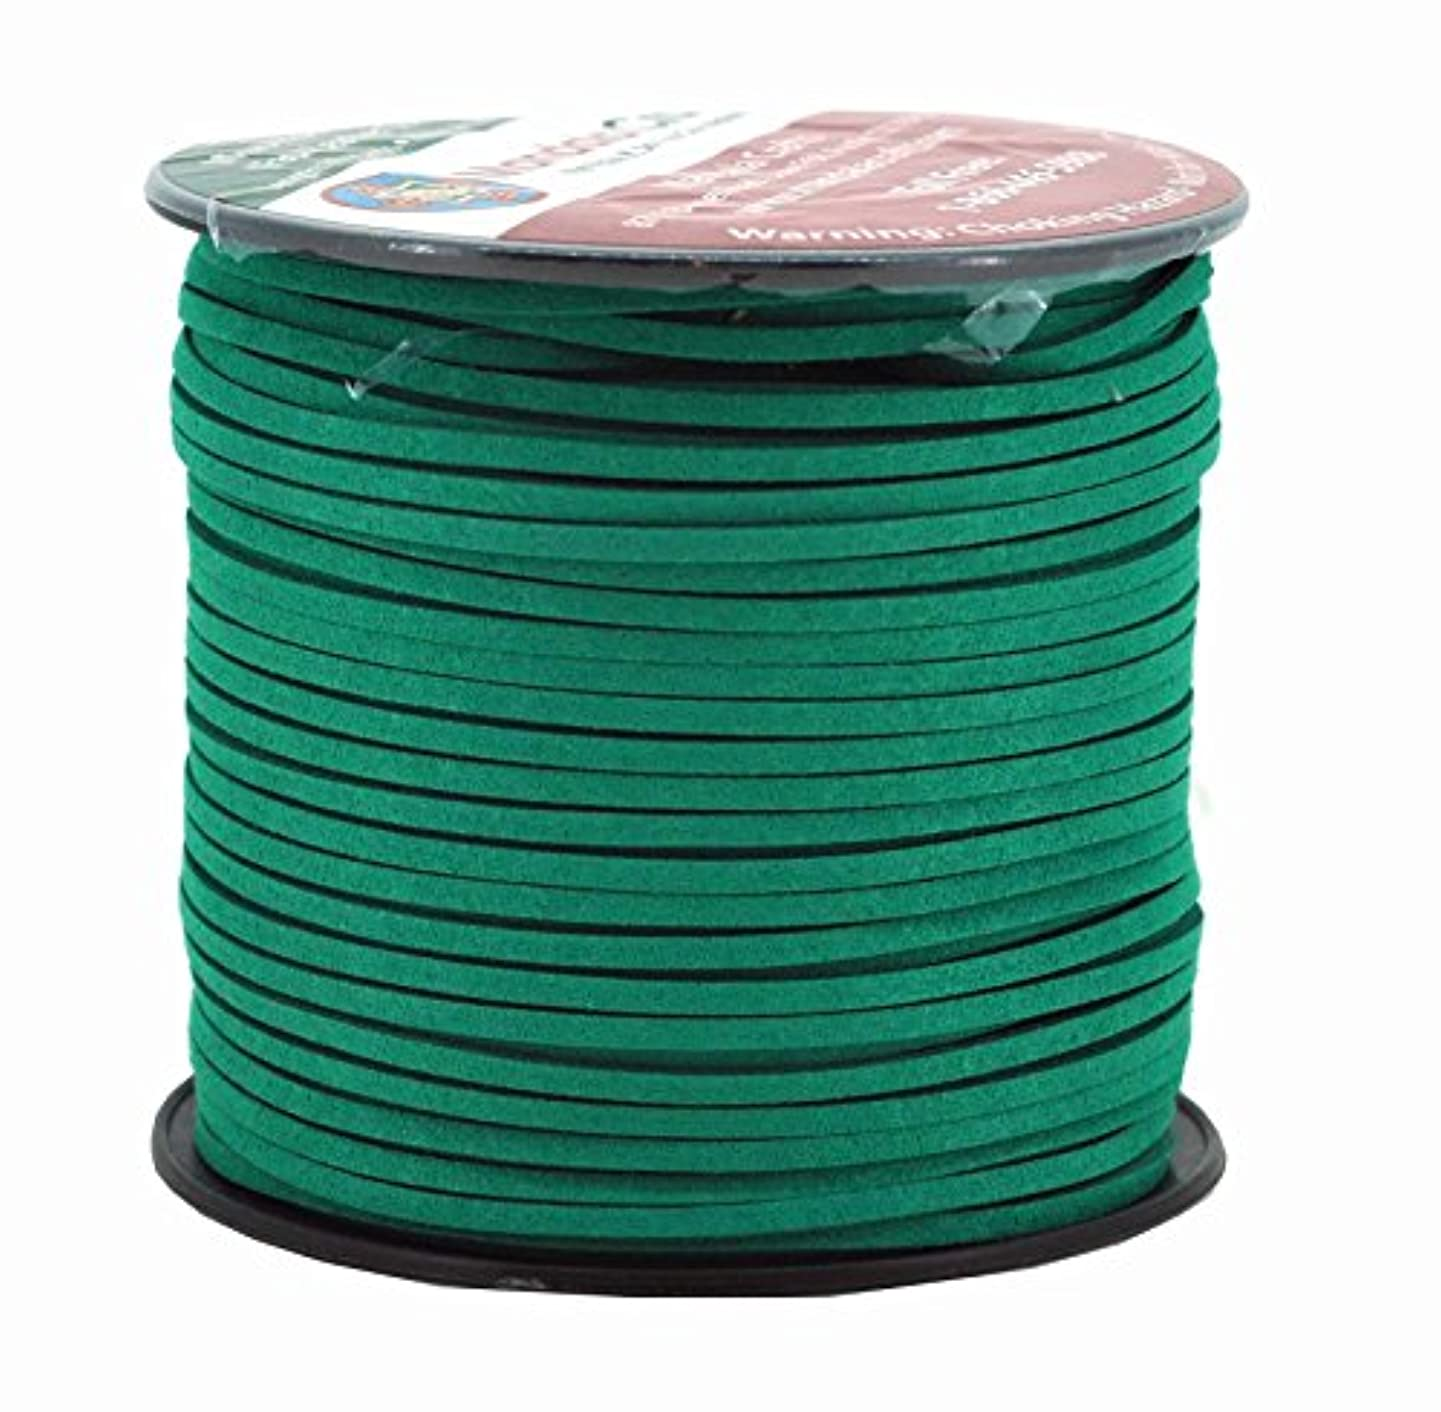 Mandala Crafts 100 Yards 2.65mm Wide Jewelry Making Flat Micro Fiber Lace Faux Suede Leather Cord (Jungle Green)